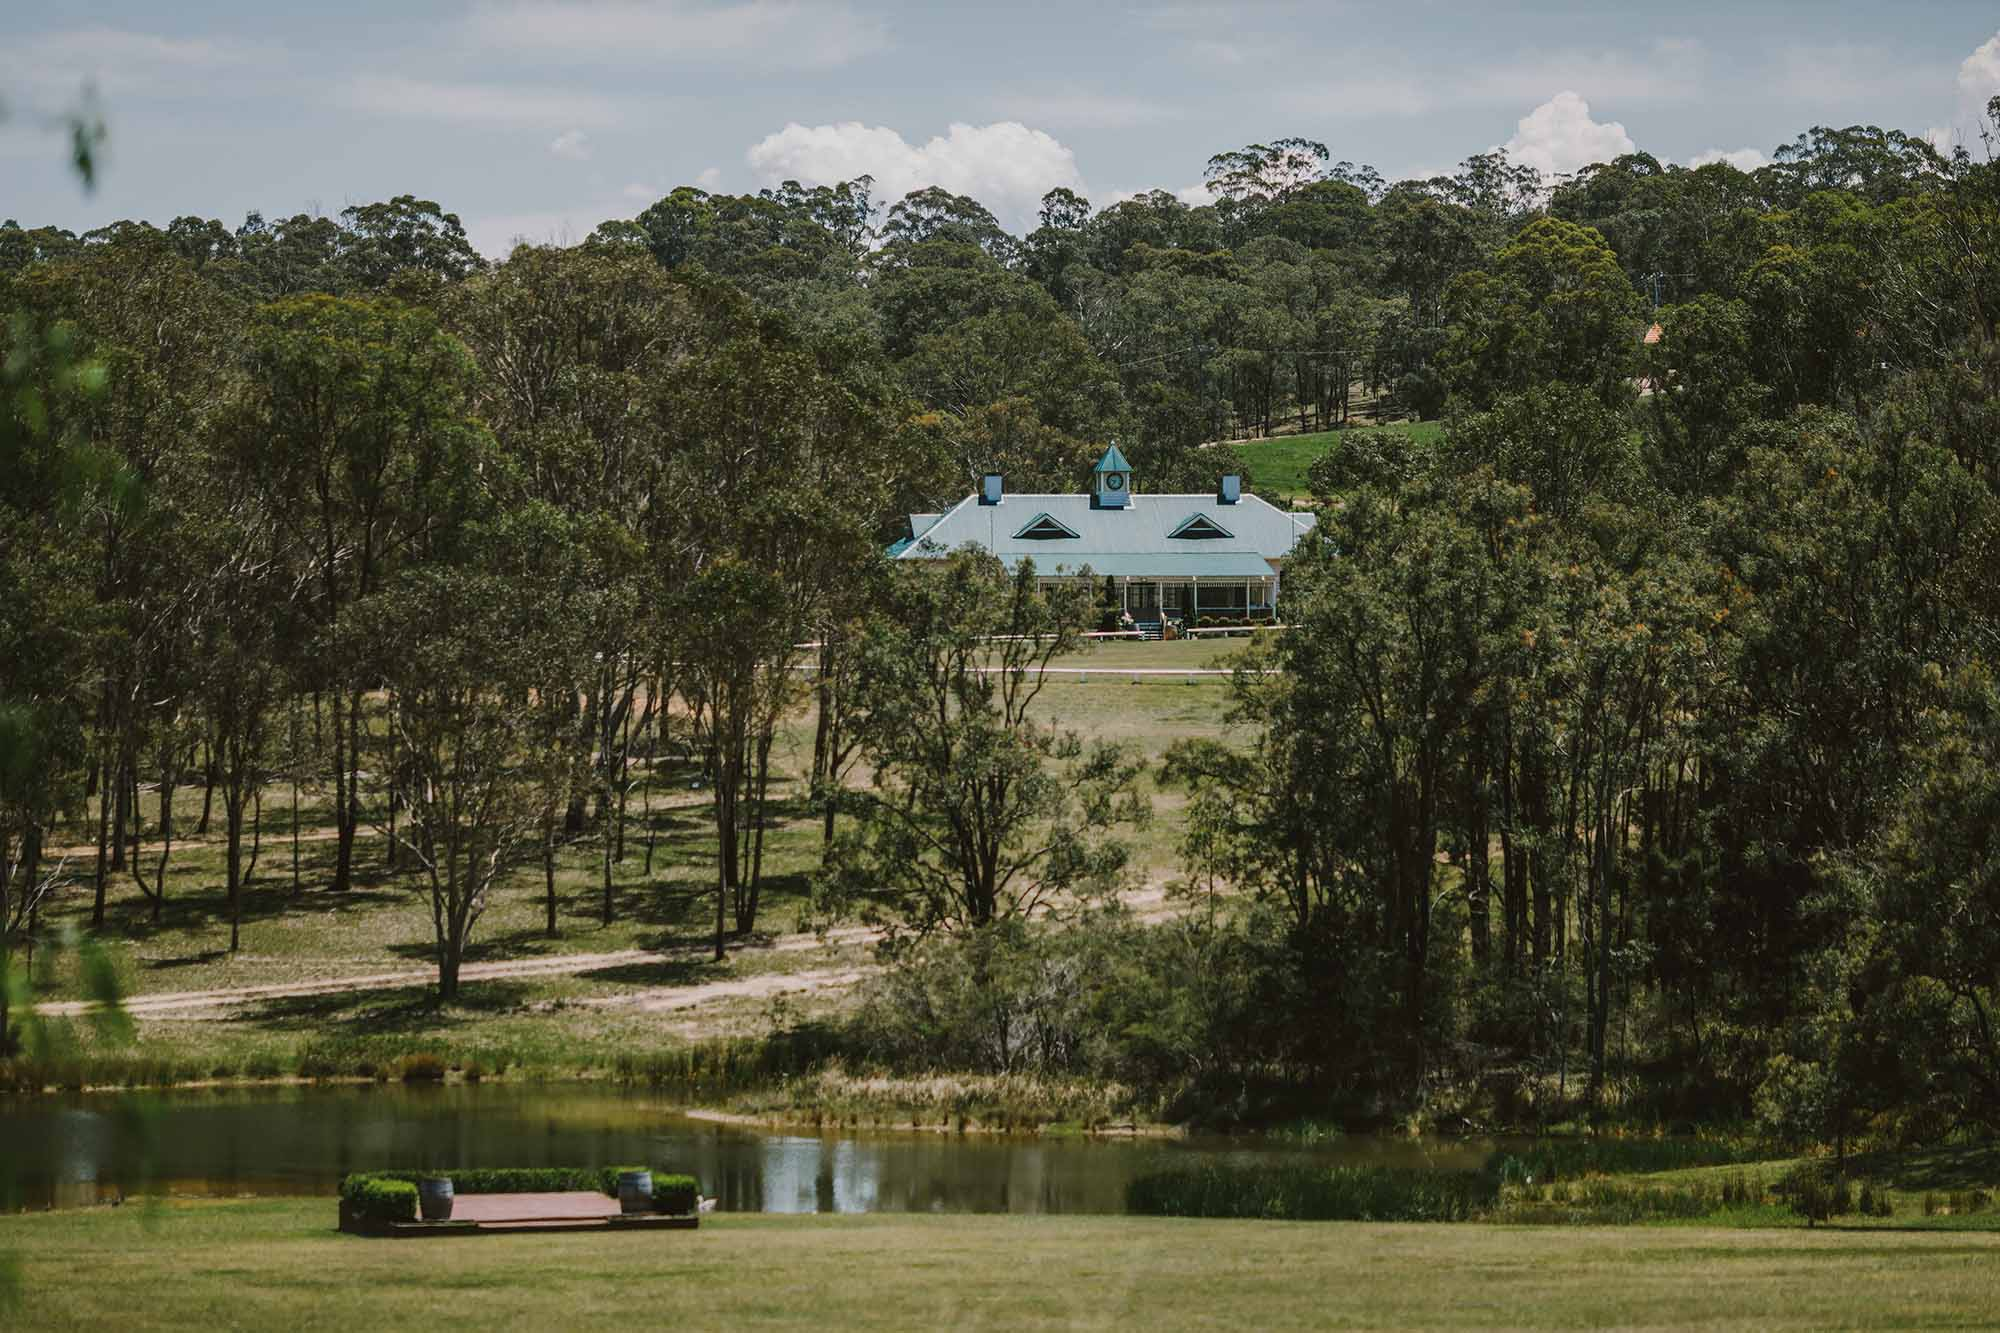 Wandin wedding venue